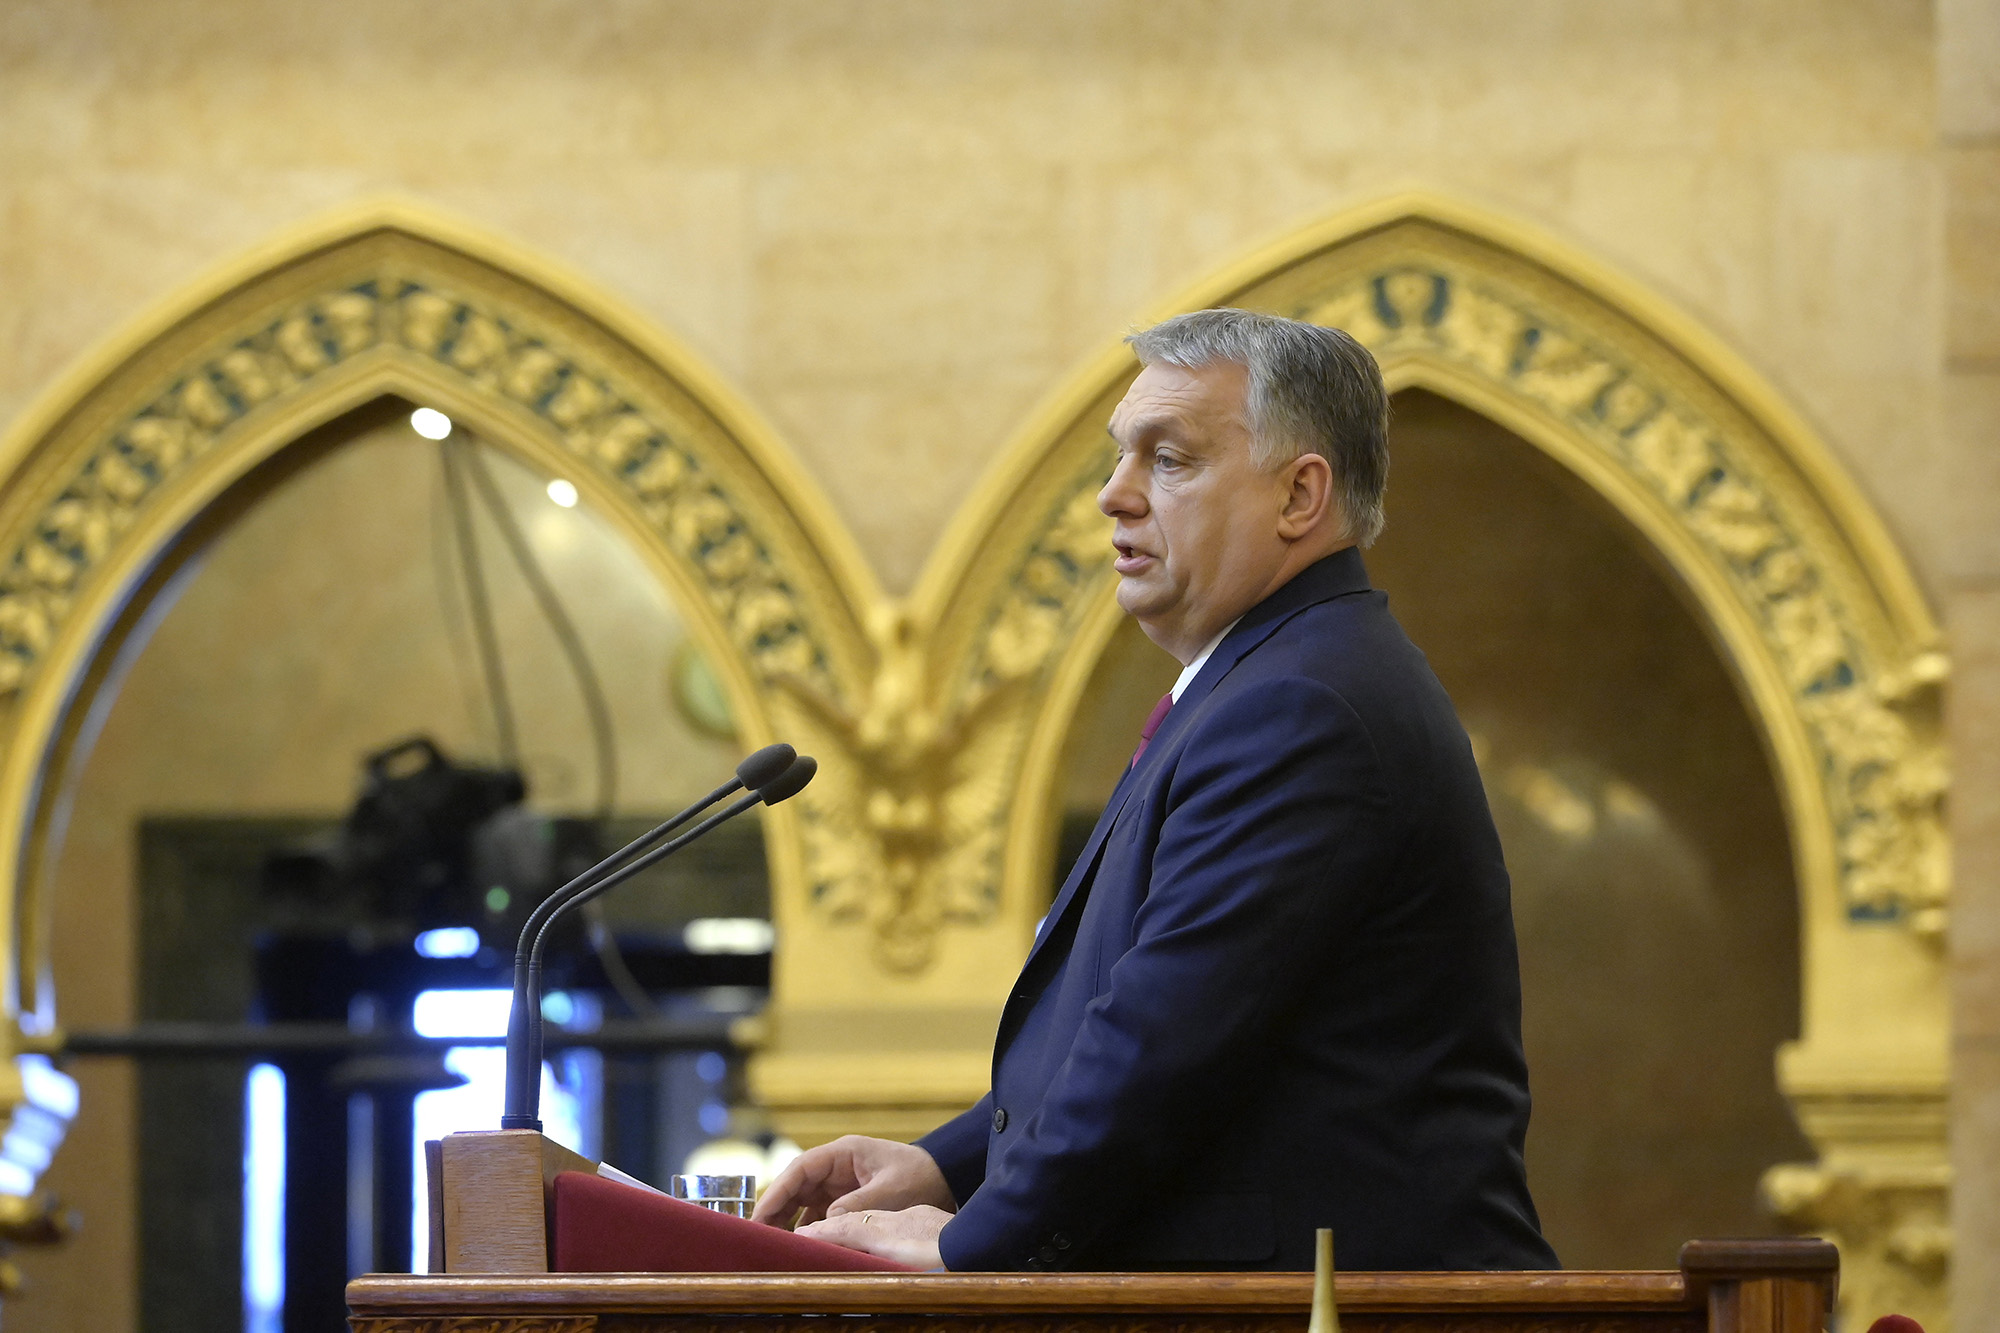 Hungarian Prime Minister Viktor Orban gives a speech in the country's parliament on February 15, 2021.